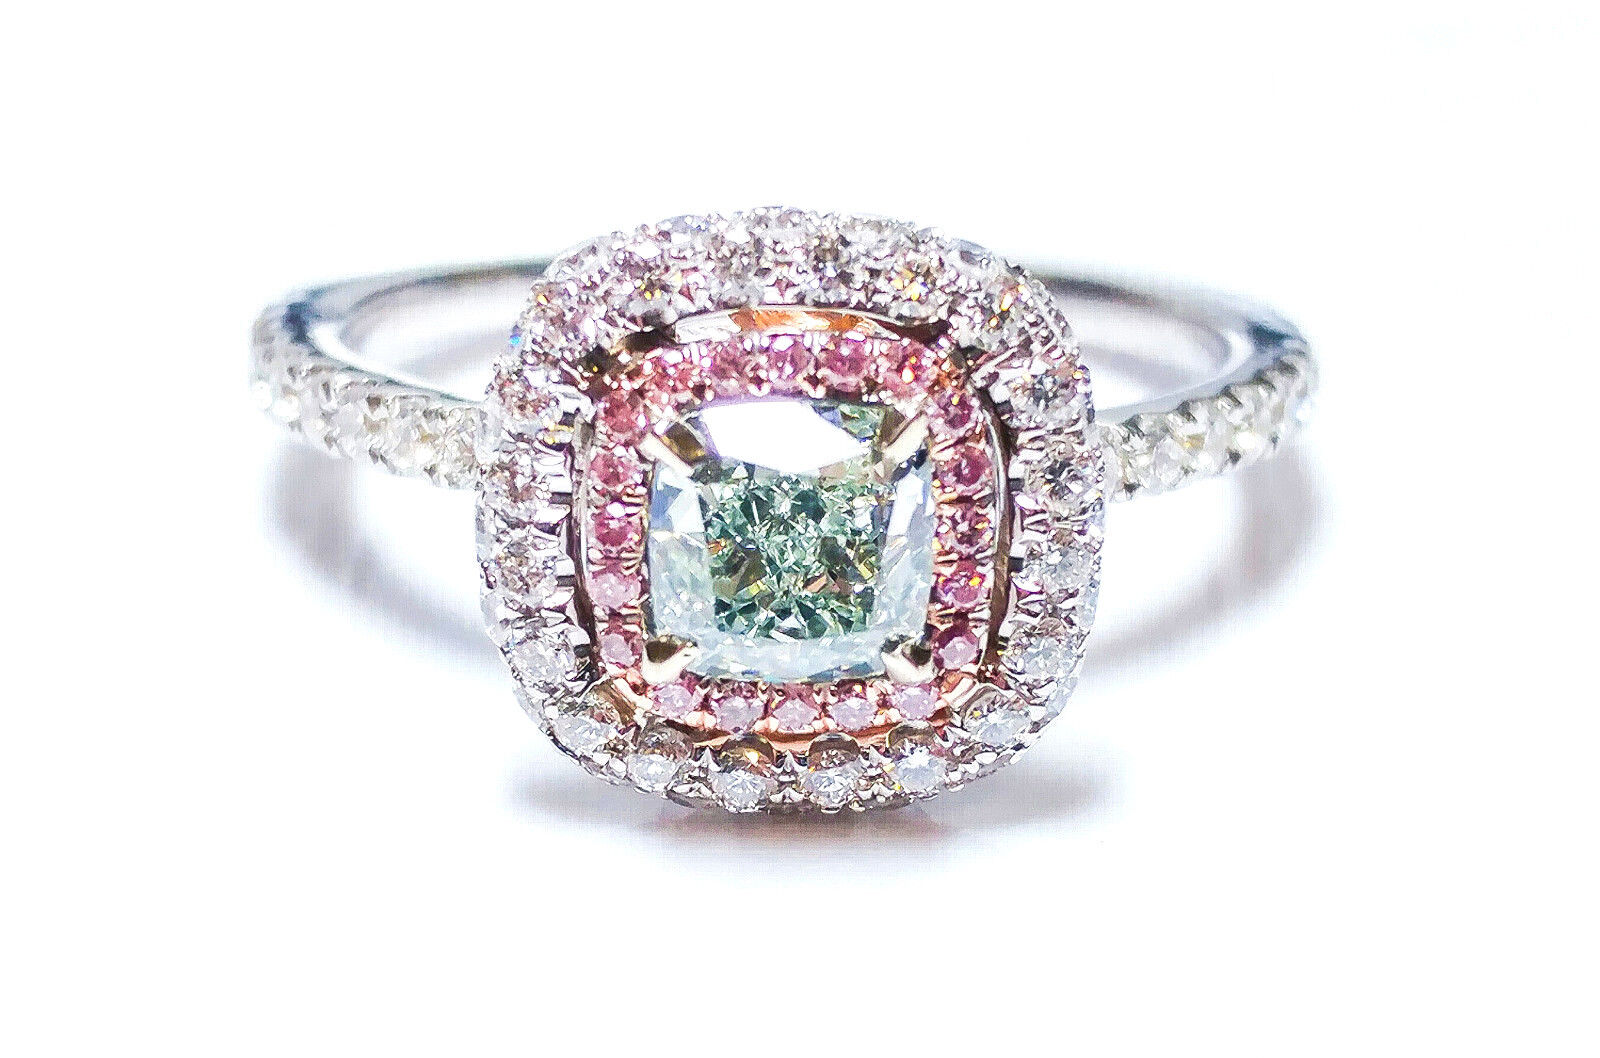 1.31ct Light Green, Argyle 6pp Intense Pink Diamond Engagement Ring GIA 18K VS1